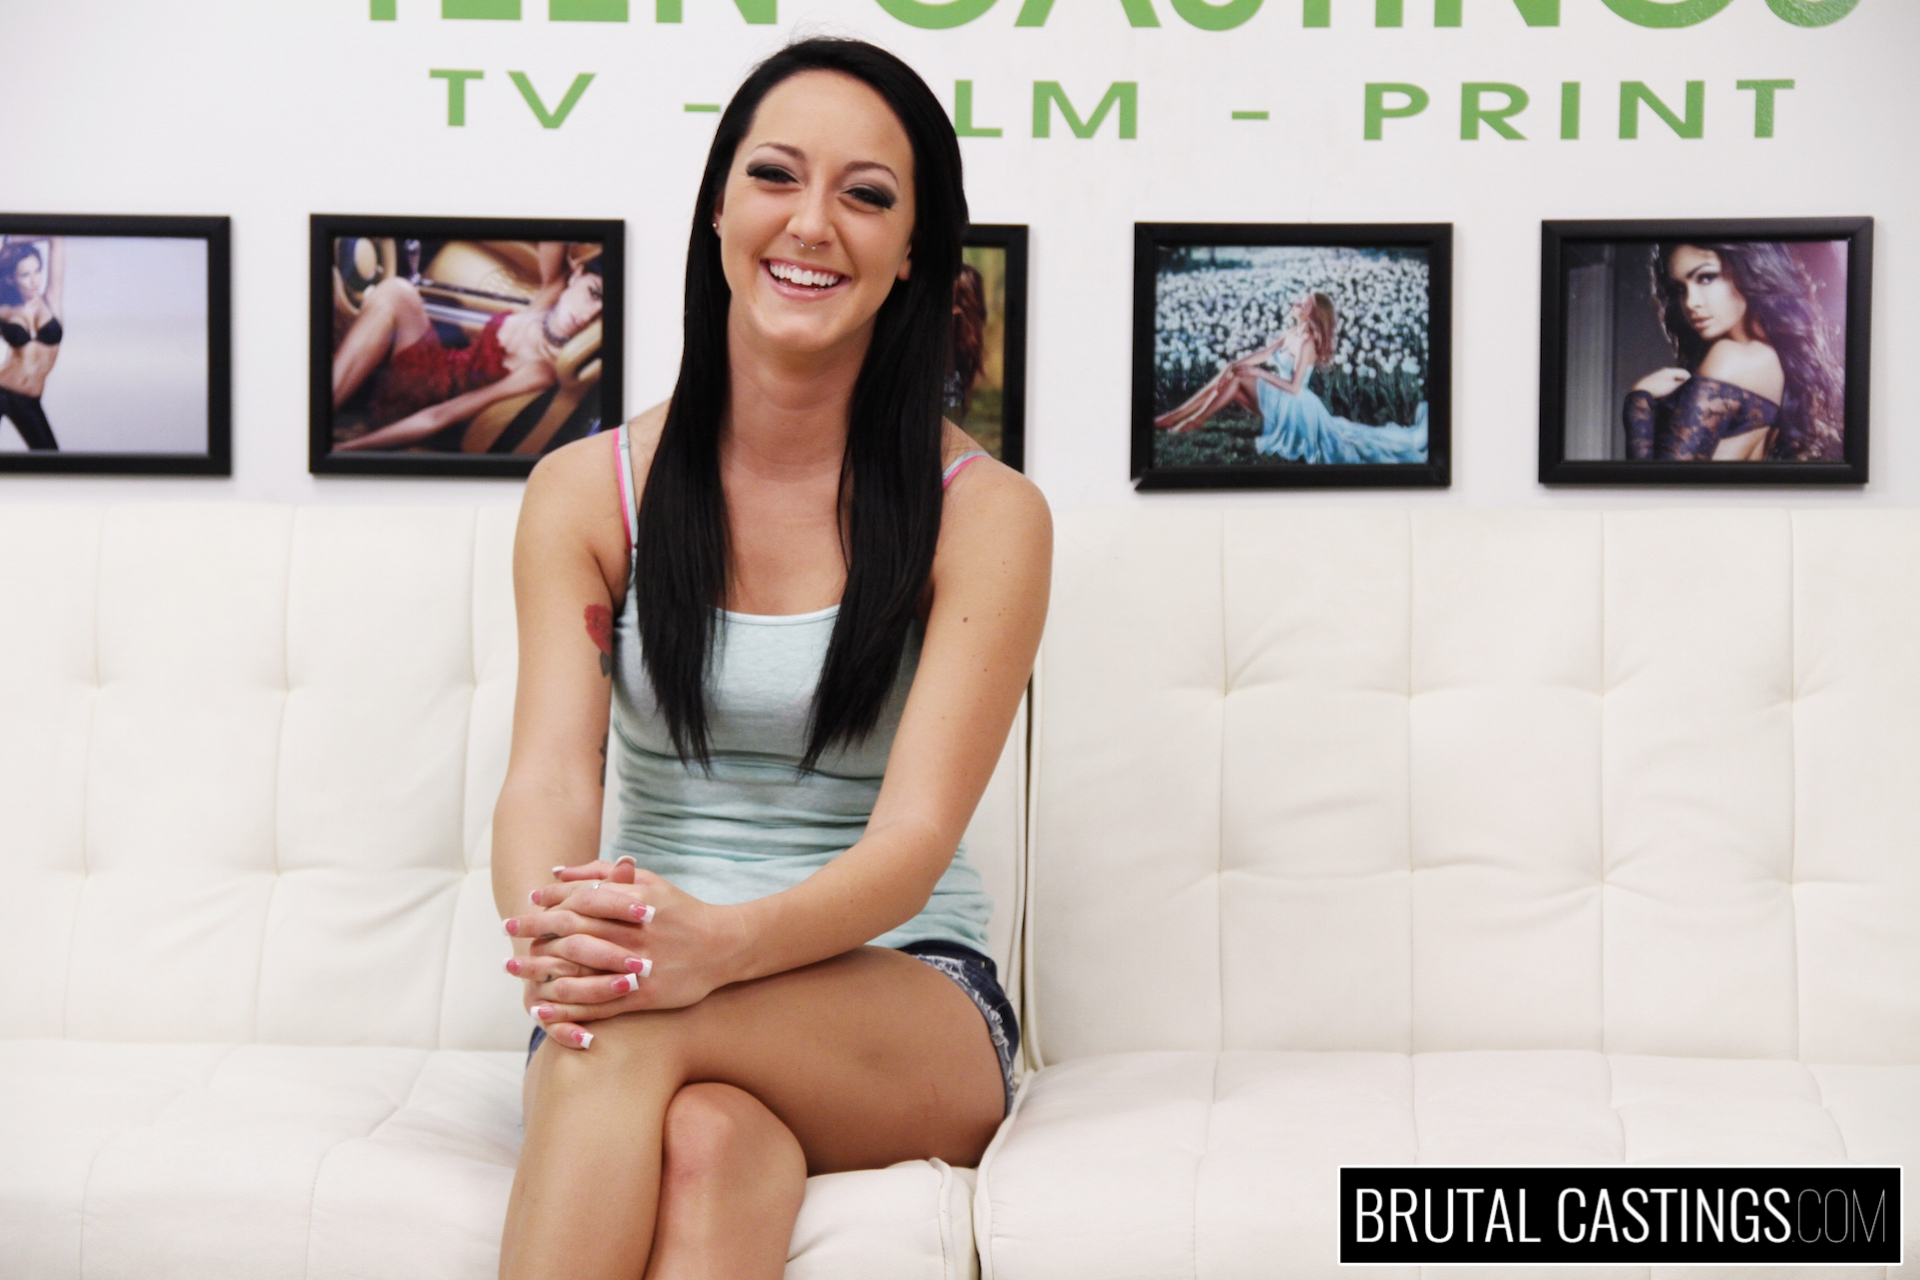 Bdsm casting couch with sabrina banks. Sabrina Banks, a horny girl meant for the camera, is ready to become the supermodel of the world! She sent her audition video to the best talent agency, Teen Castings, and gets a call back. She'll do anything to get what she wants. She'll endure his love for BDSM, domination, rope bondage, deepthroat bj, fingering, squirting, spanking, slapping and rough sex.